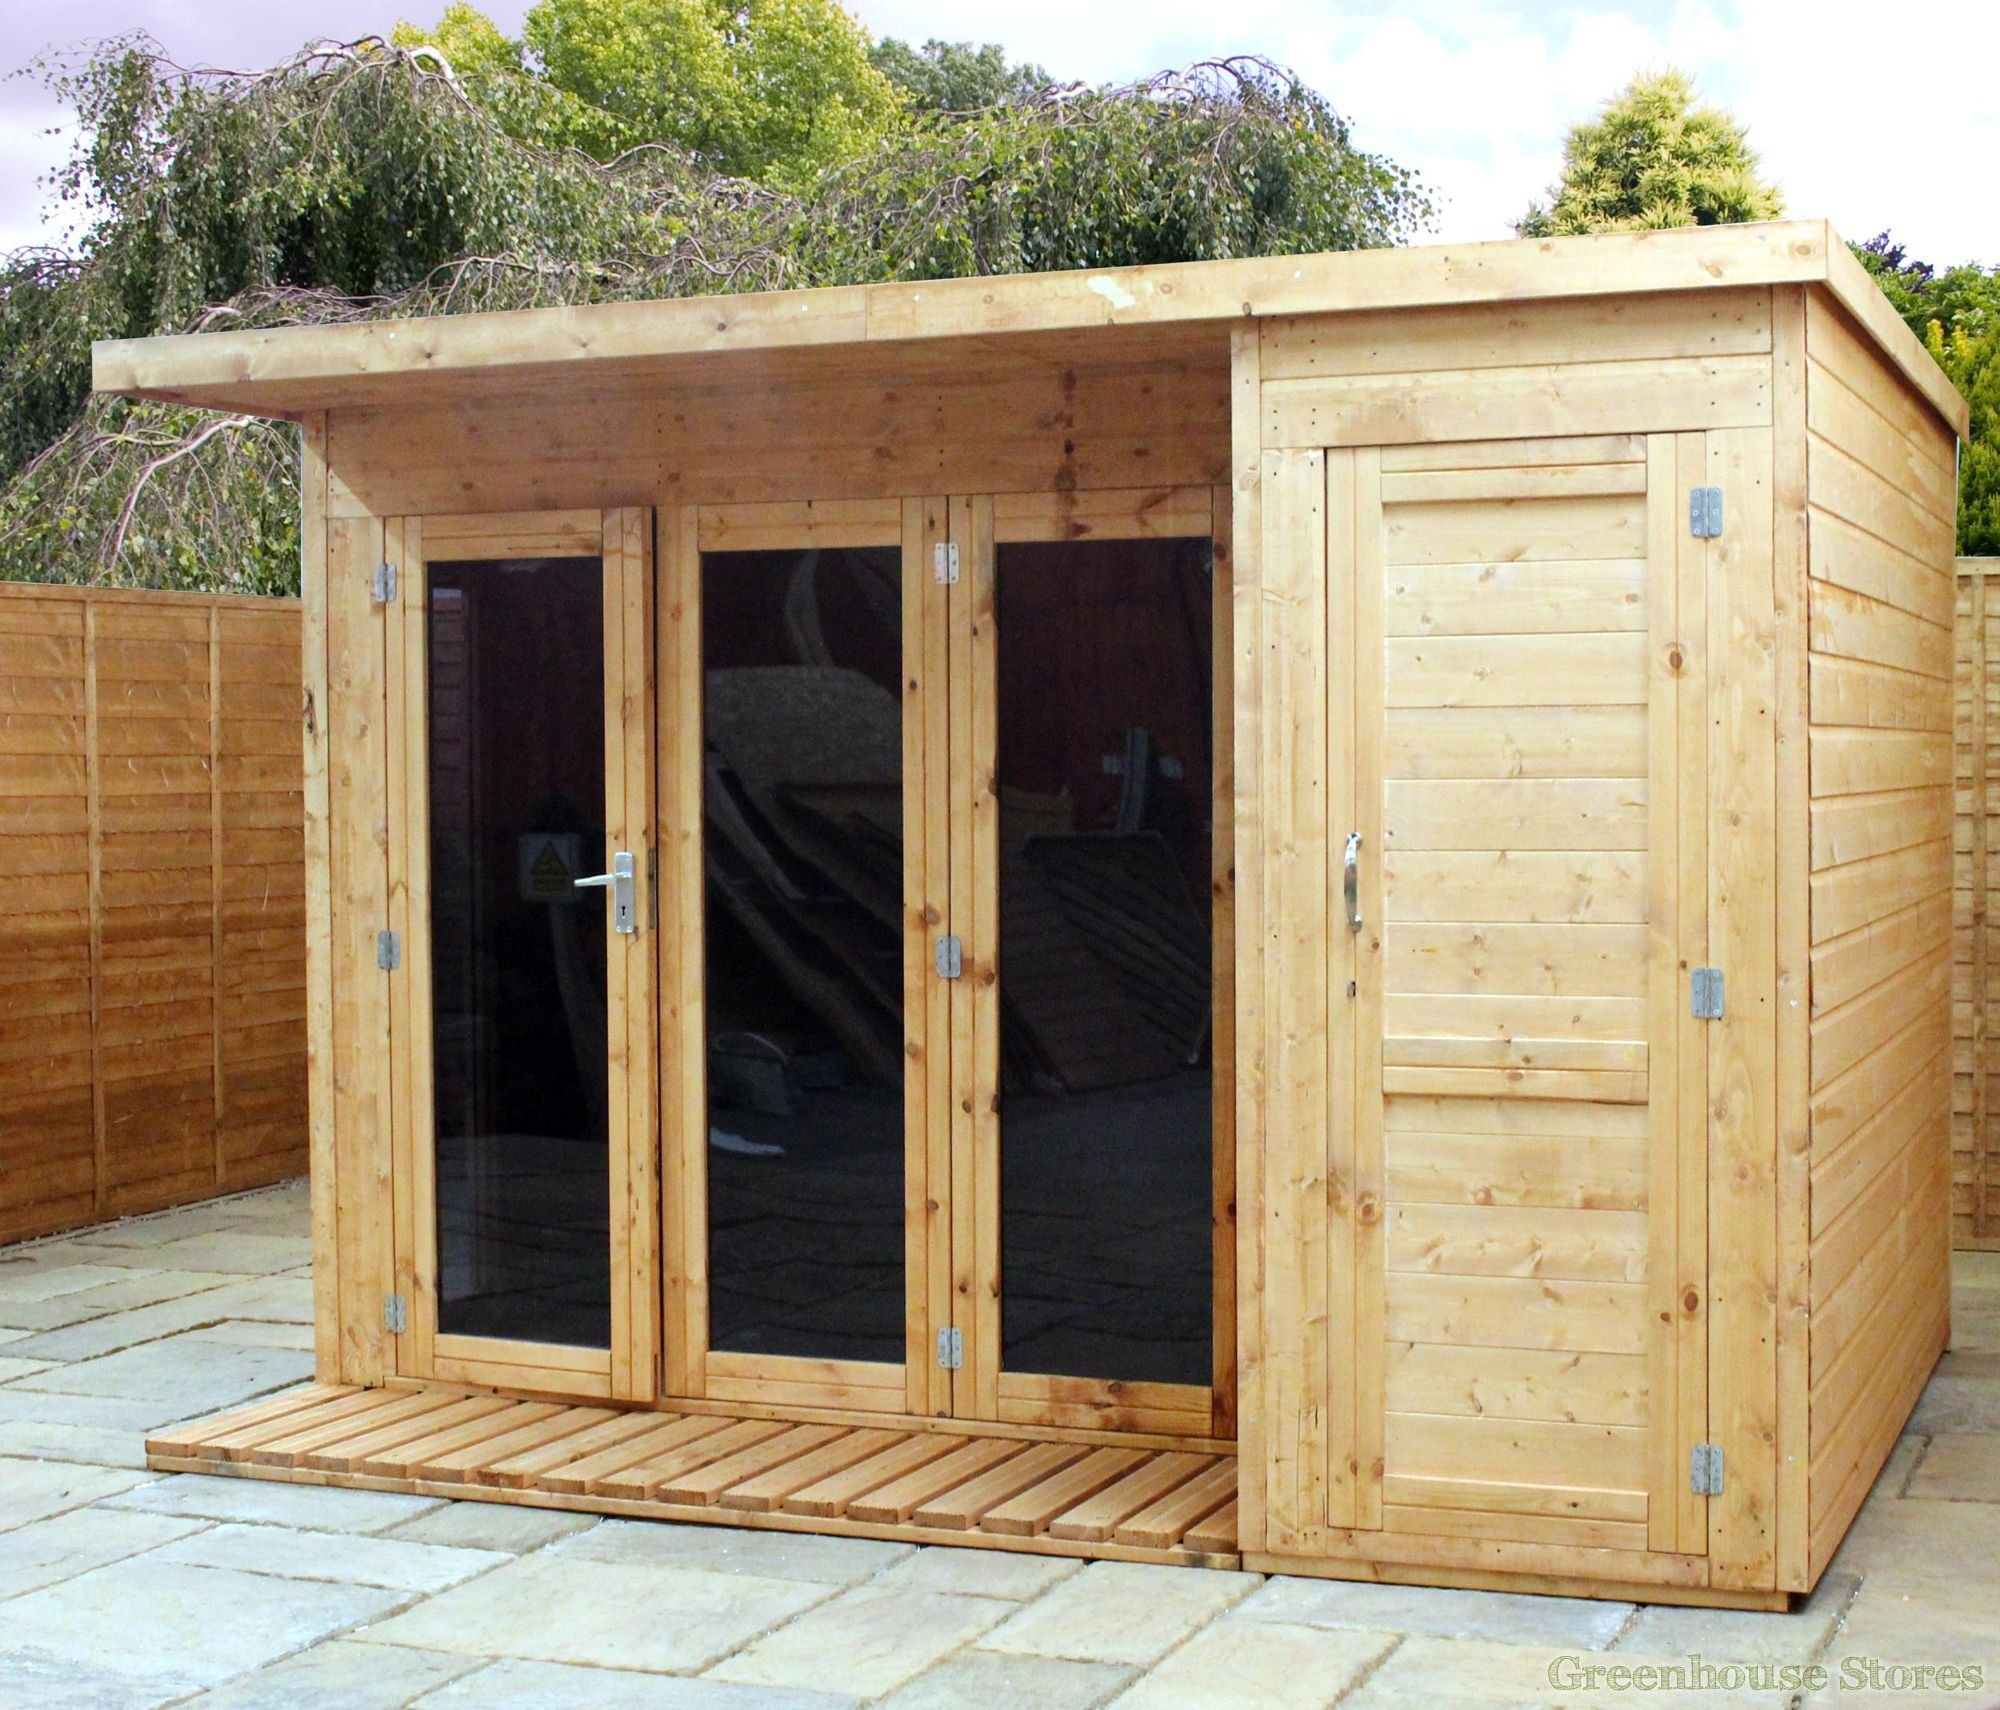 Garden Sheds 10 X 8 cotswold 10x8 modern garden room with side shed | gardens, a well